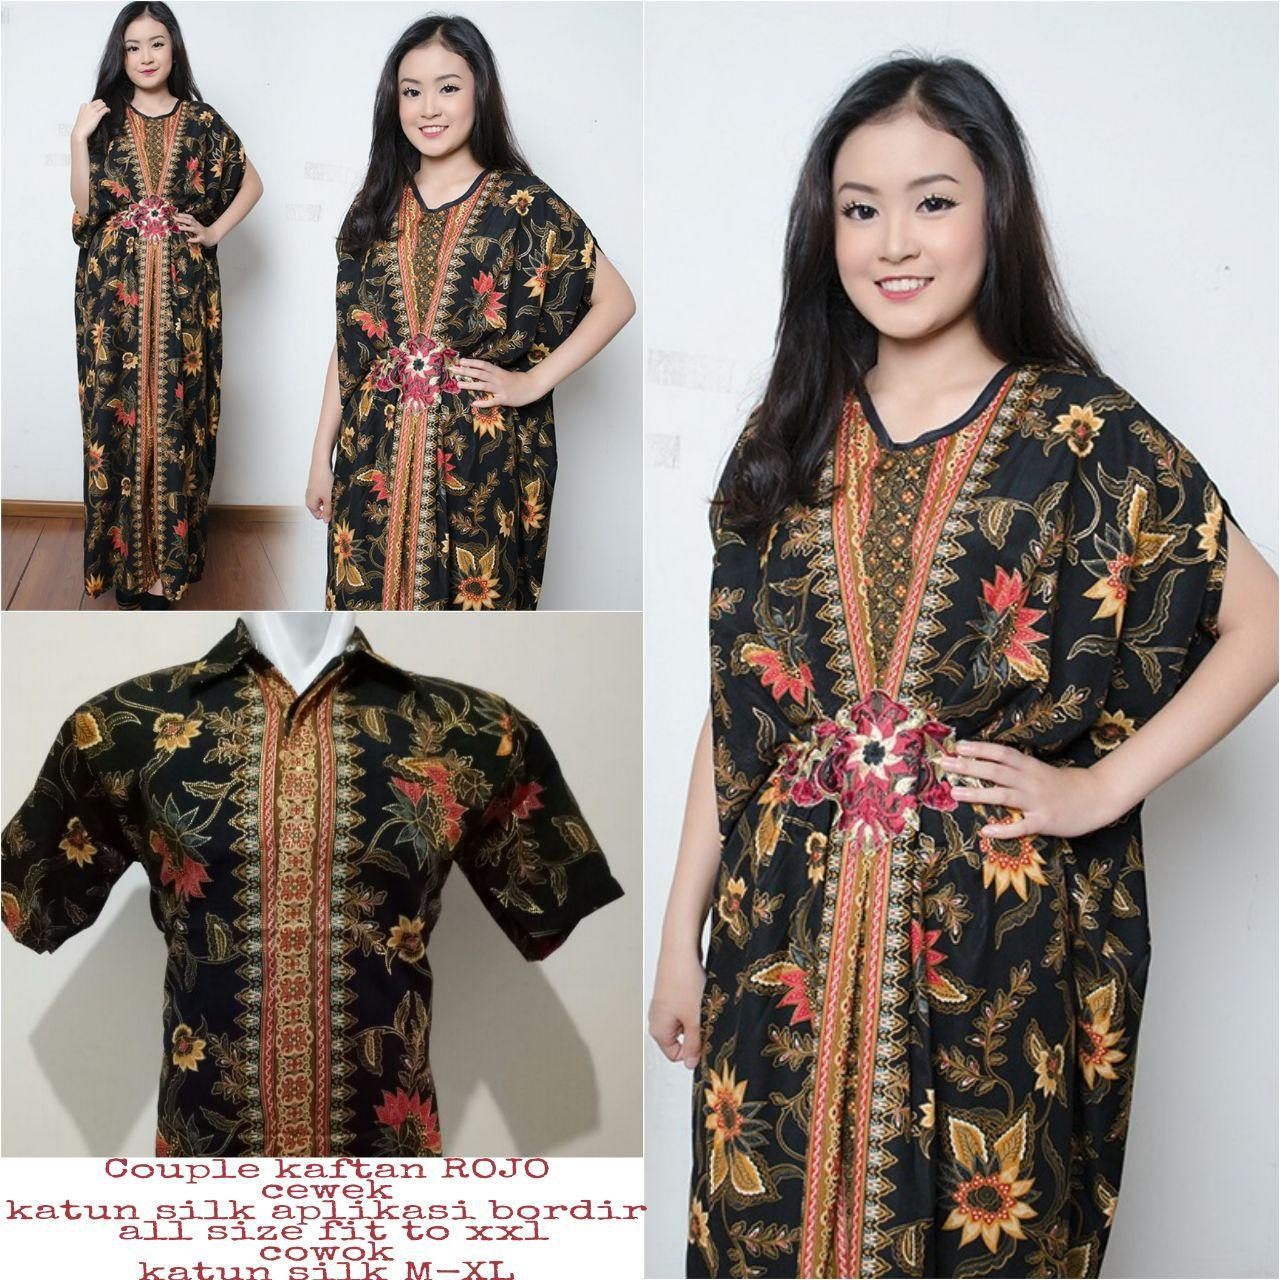 Cj collection Couple batik 2in1 dress maxi panjang gamis kaftan wanita jumbo long dress dan atasan kemeja pria shirt Elda M - XL